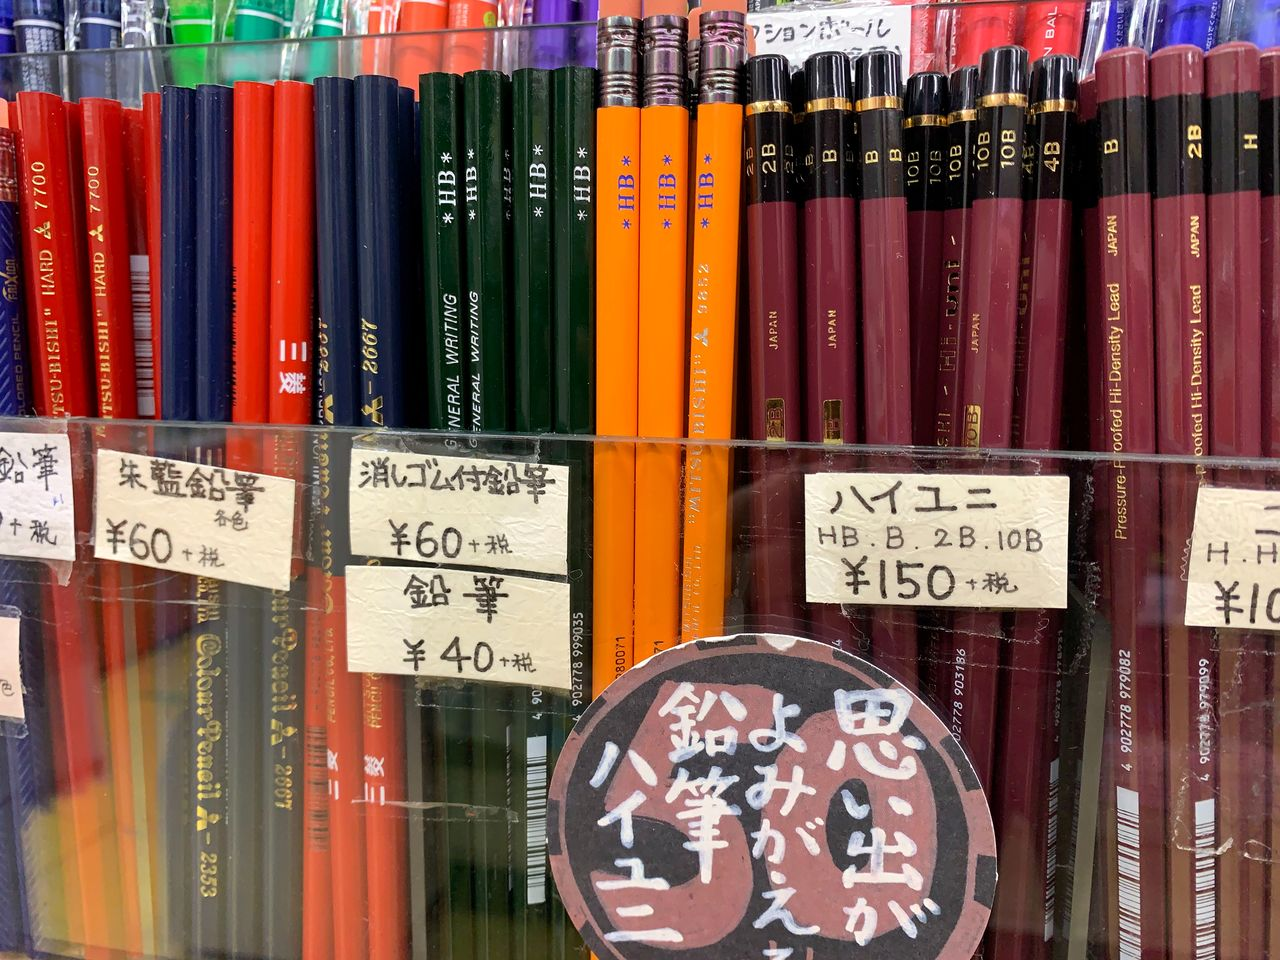 Mitsubishi pencils are seen on sale at a stationary store in Tokyo, Japan, February 3, 2021. REUTERS/Chang-Ran Kim REUTERS/Chang-Ran Kim